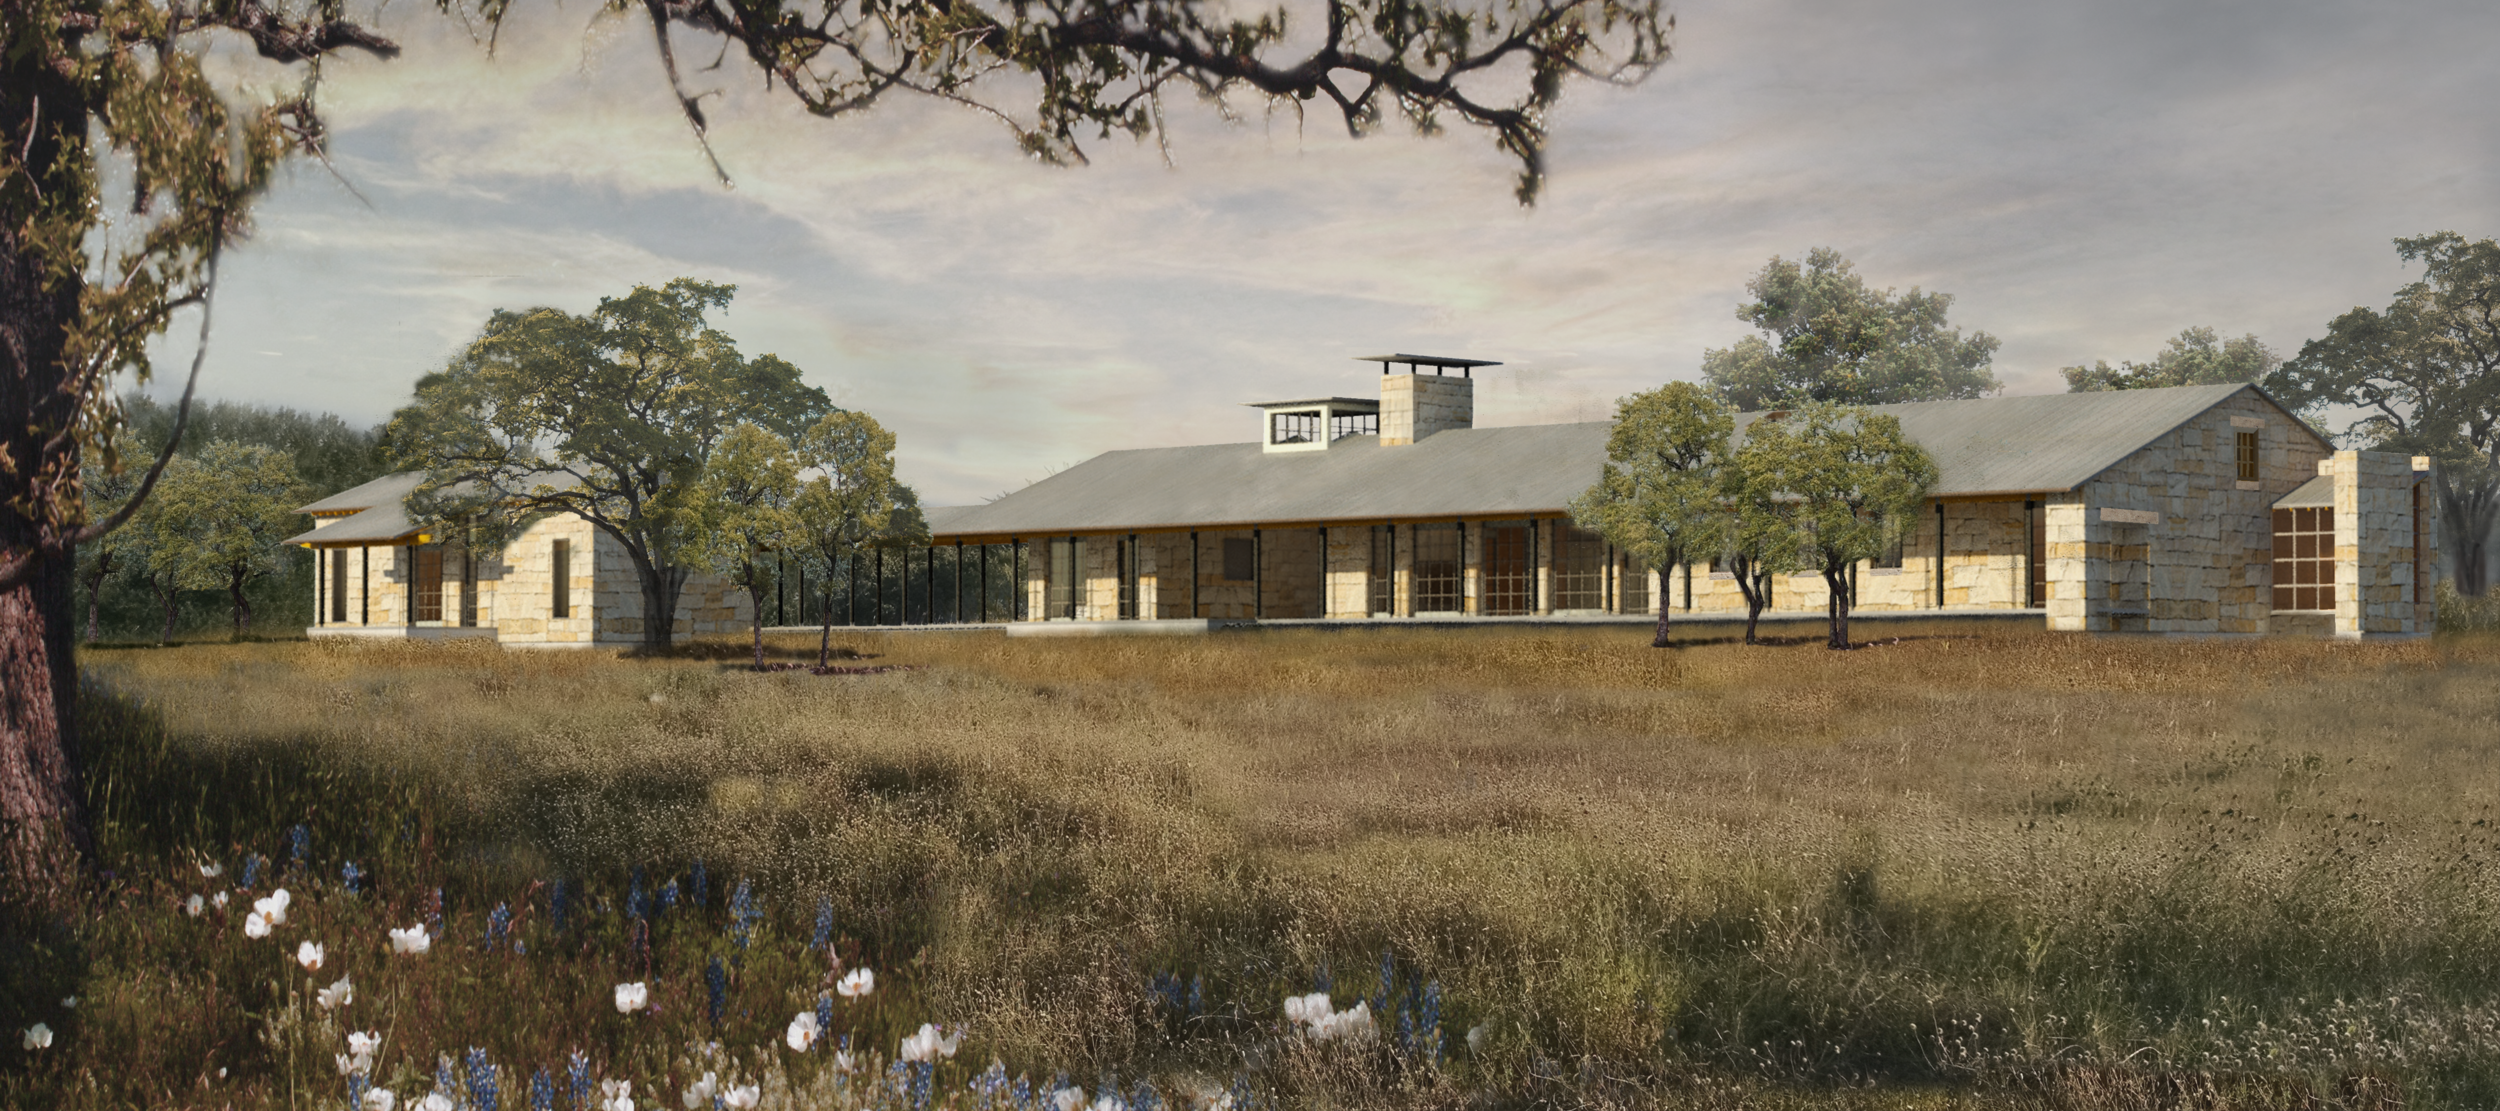 The Guadalupe River House, Kendall County, TX  Native Materials | Sustainability | Connectivity to Nature | Contextual